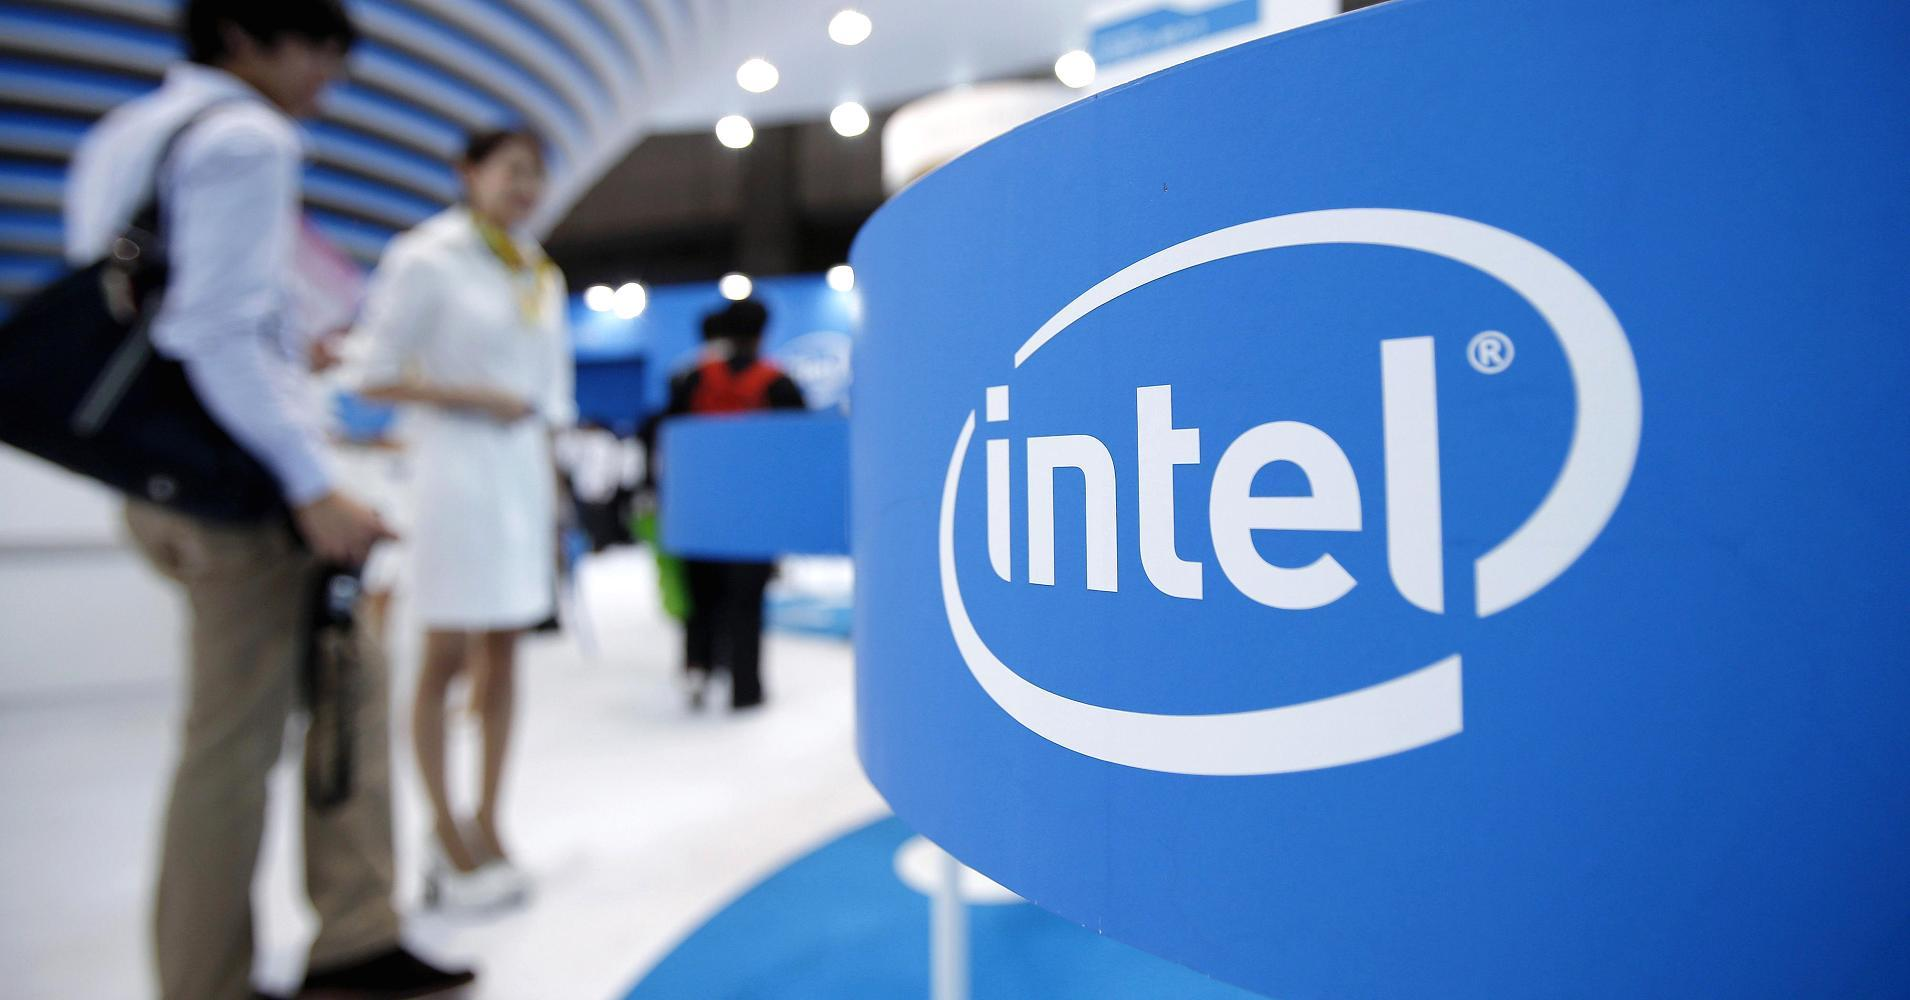 One semiconductor could outperform on earnings